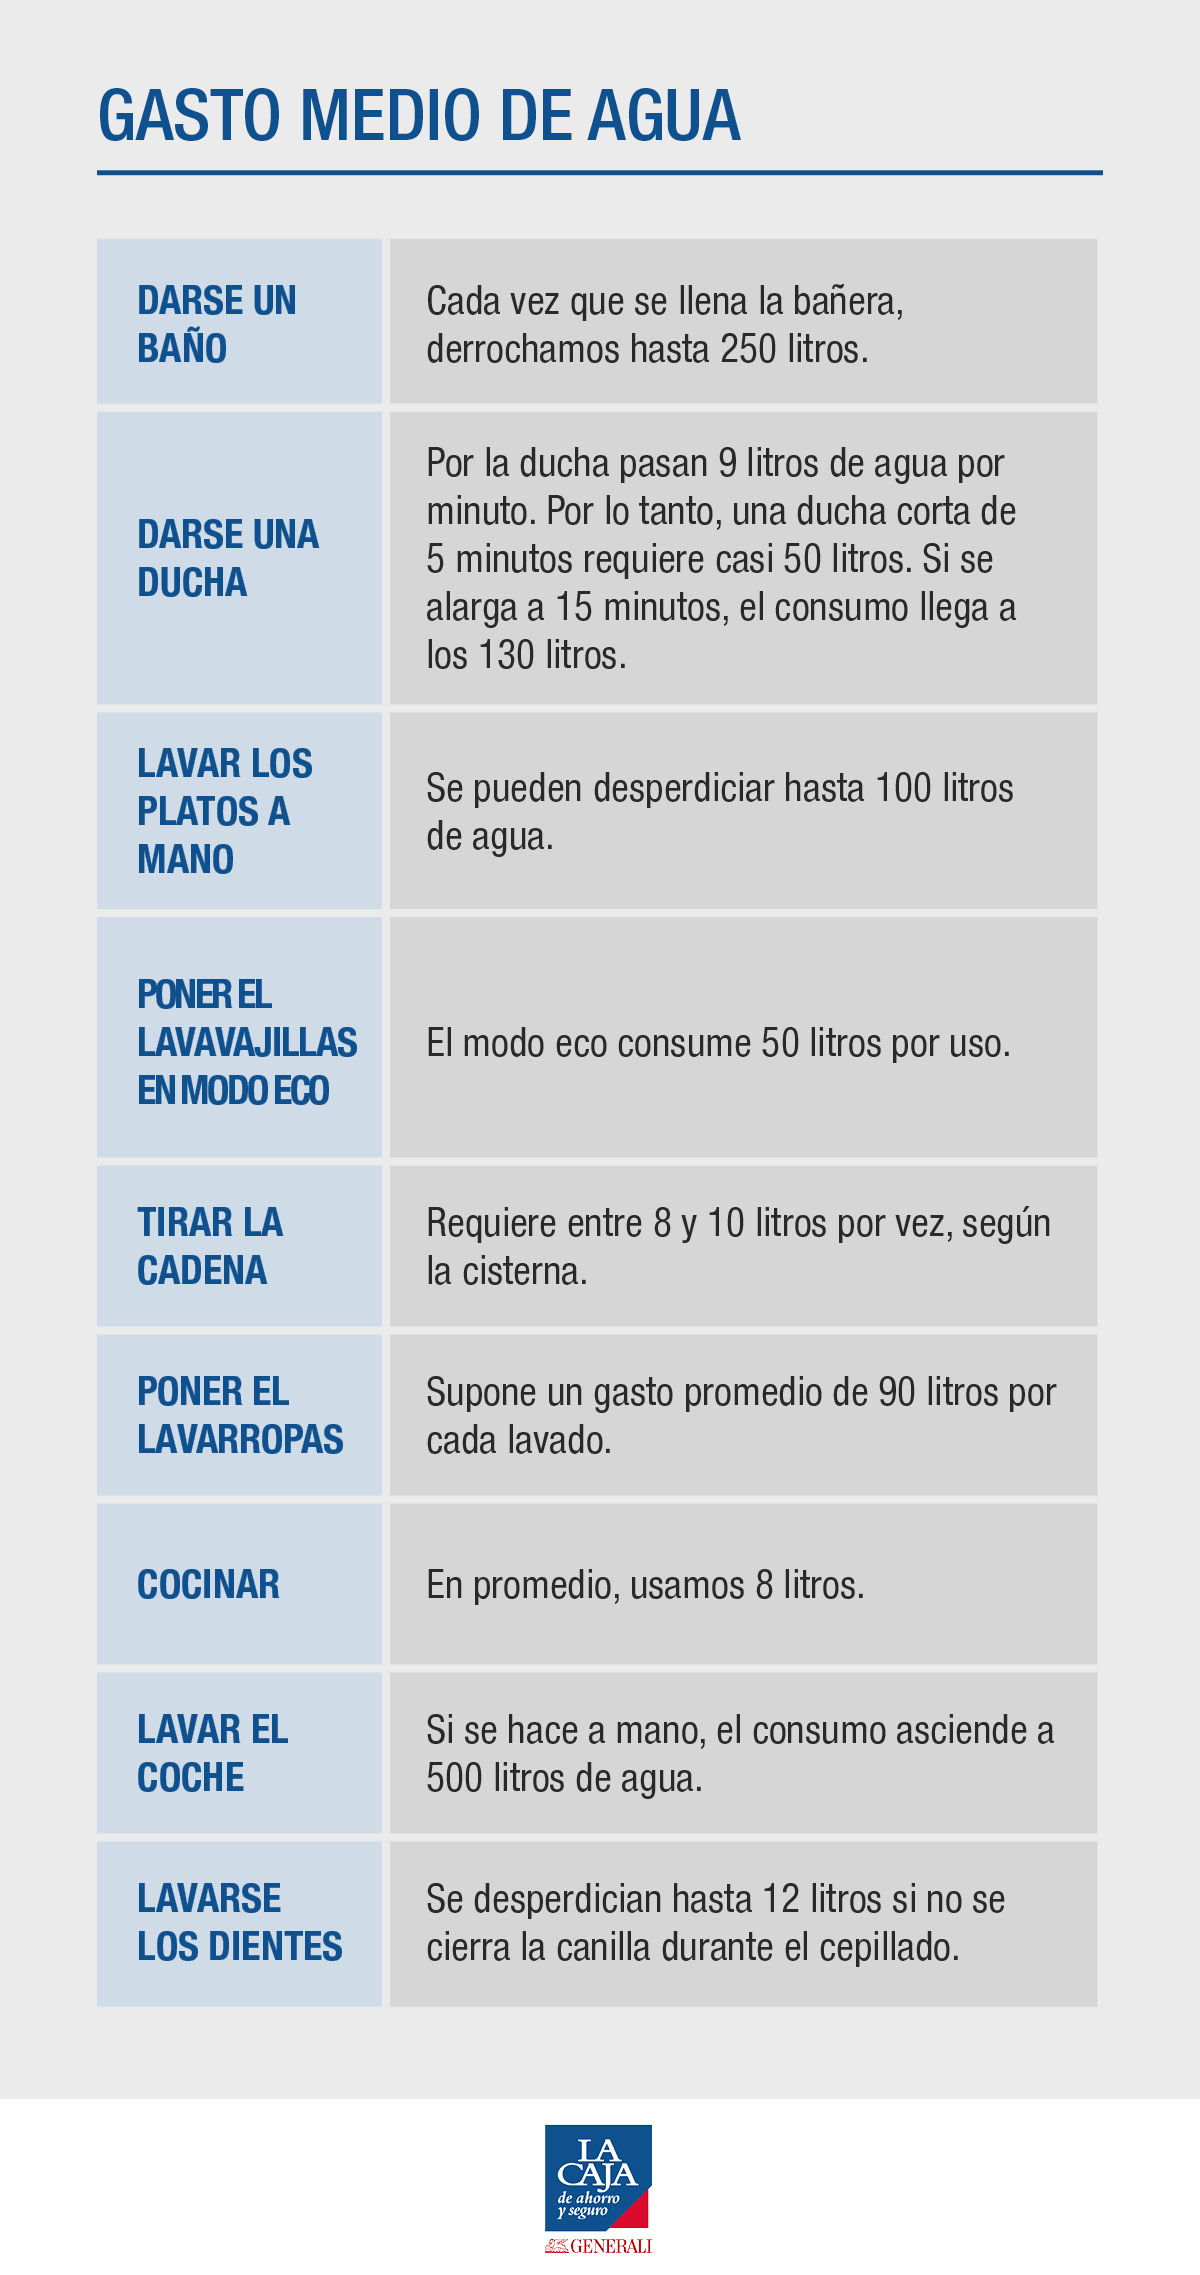 Generali_How to save water at home_Infographic_Argentina_11.05.21.jpg